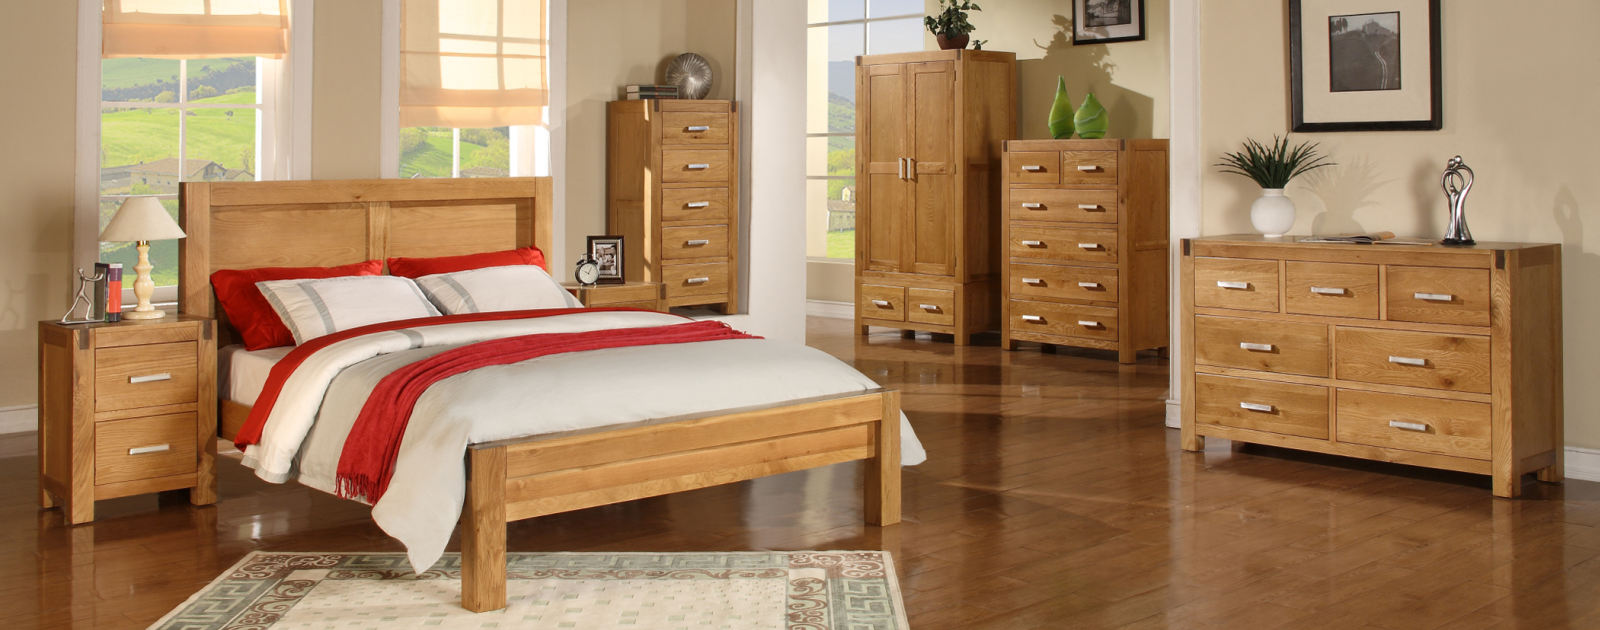 Home - Surrey Furniture Warehouse